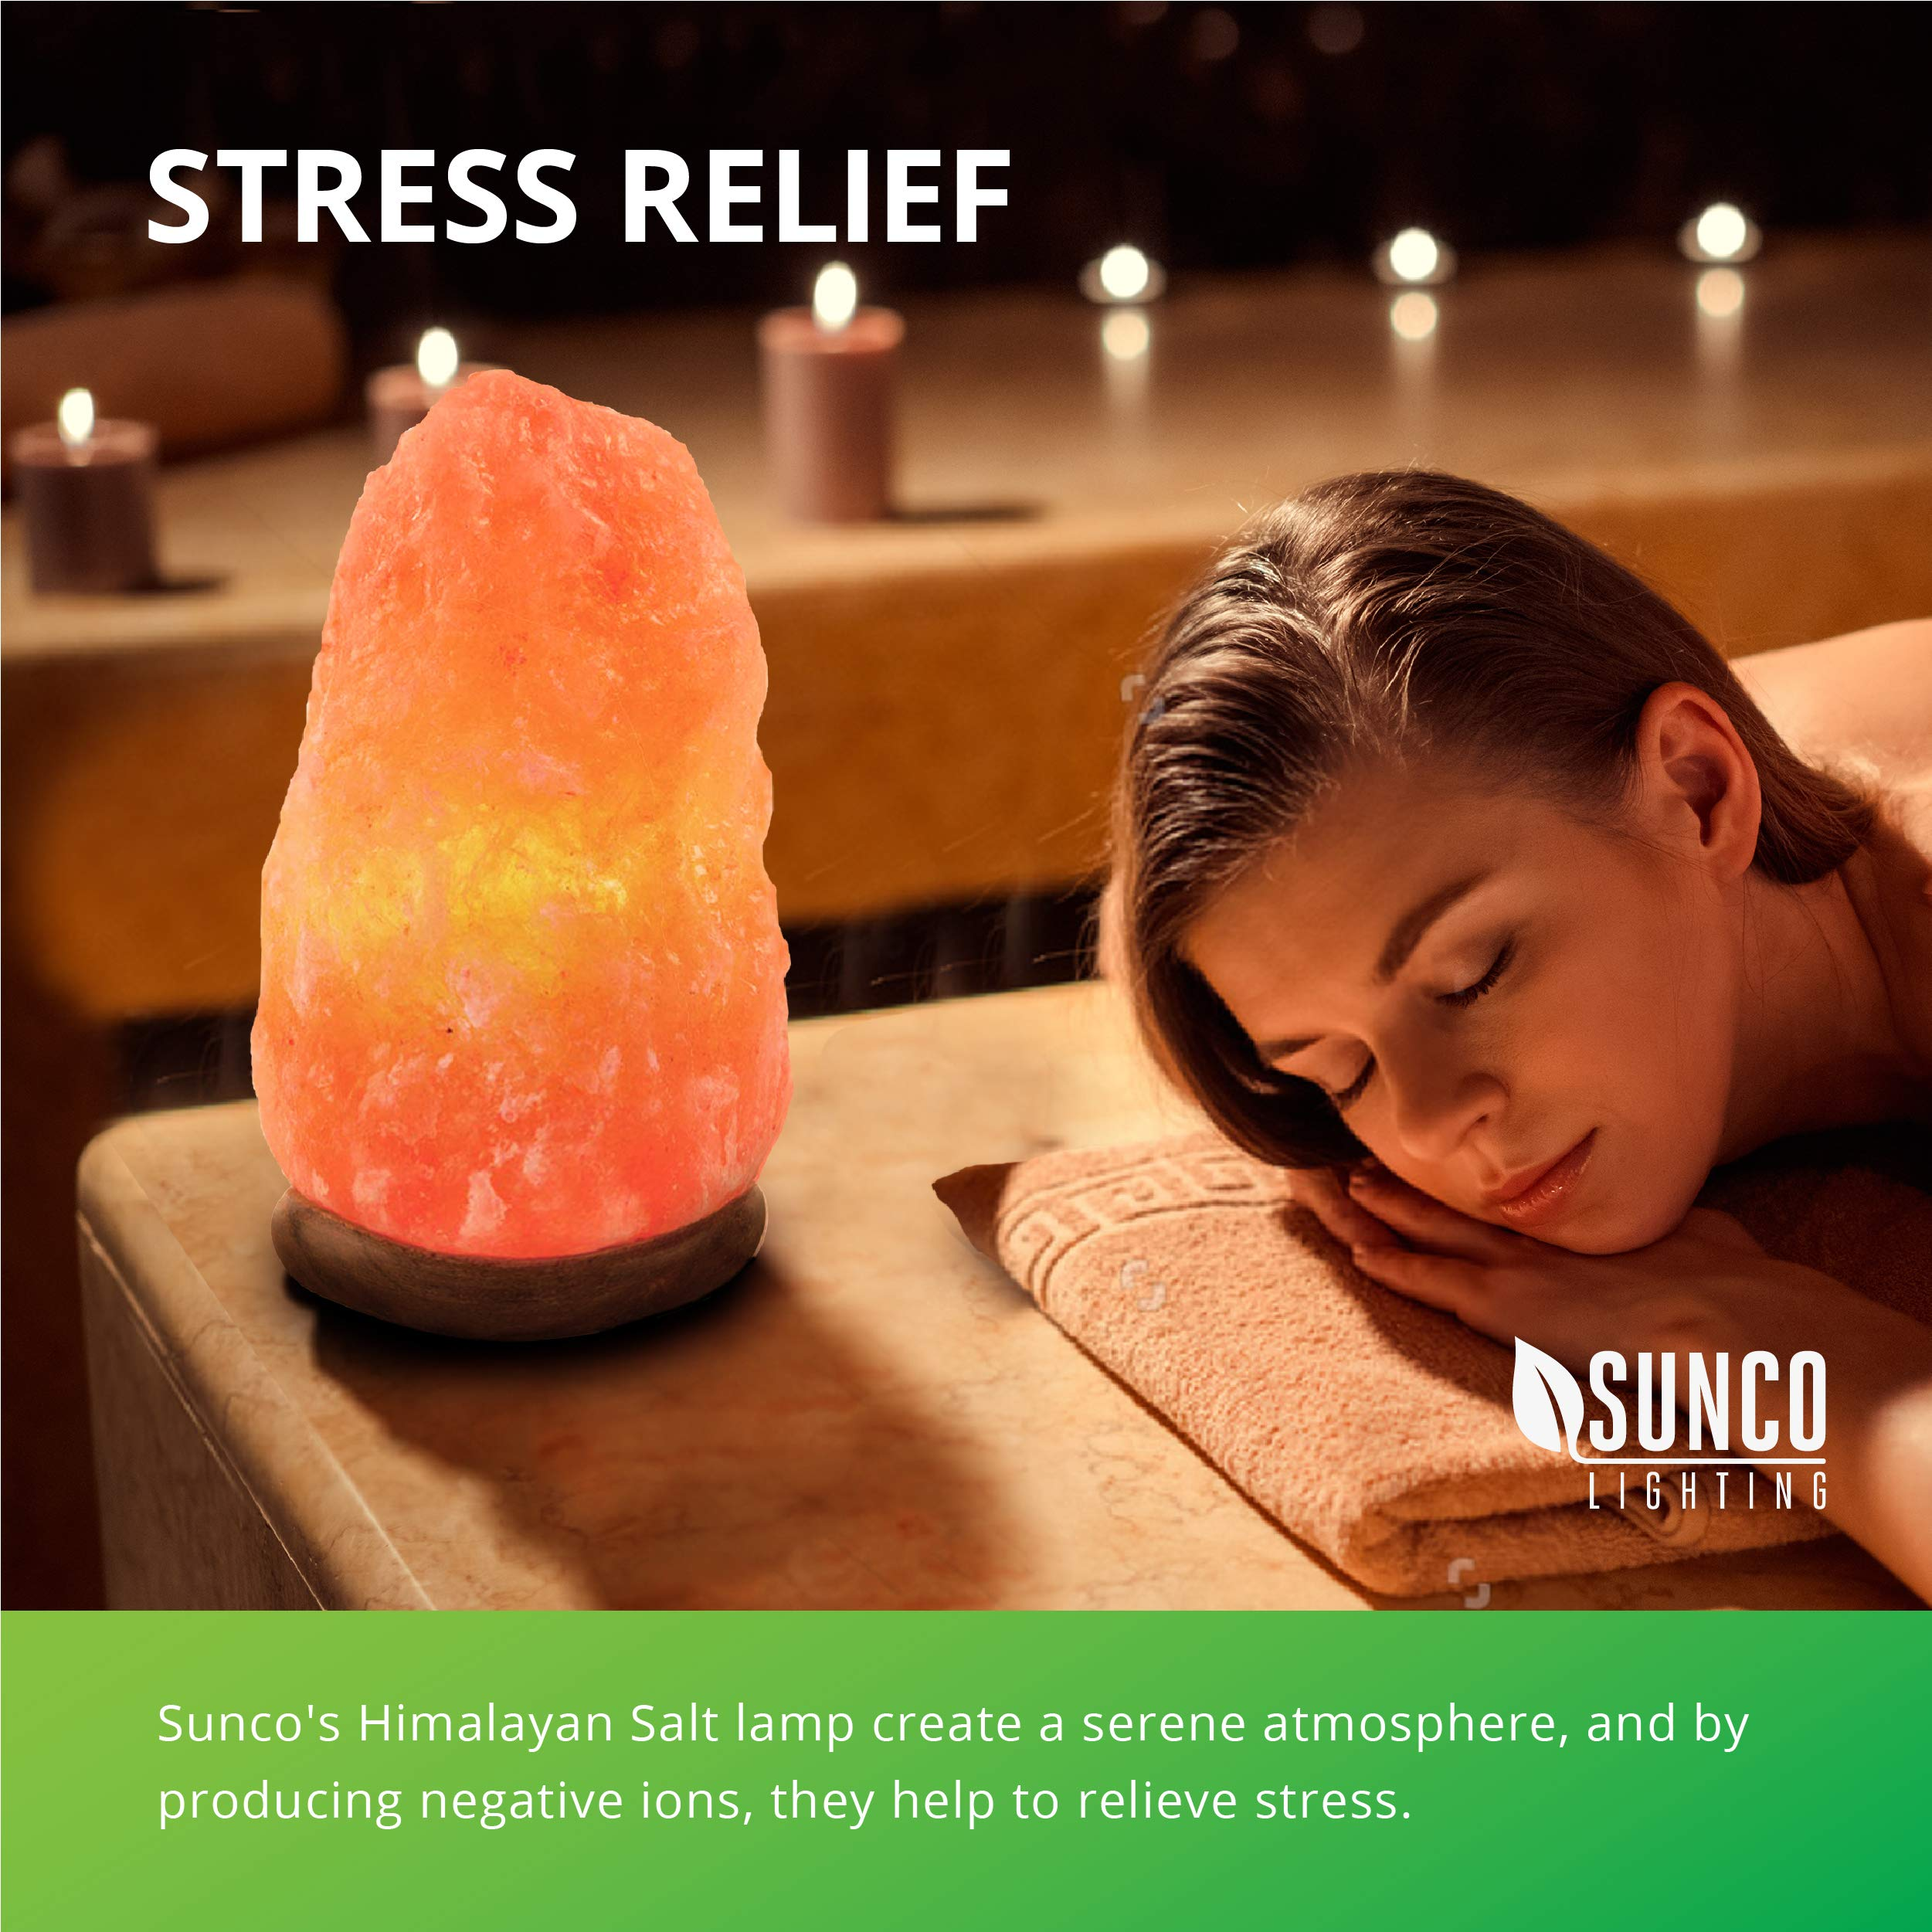 Sunco Lighting 6 Pack Crystal Salt Lamp, 5-10 lbs, Natural Himalayan Salt, Hand Crafted, Rose Wood Base, Dimmable, Warm Amber Glow by Sunco Lighting (Image #1)